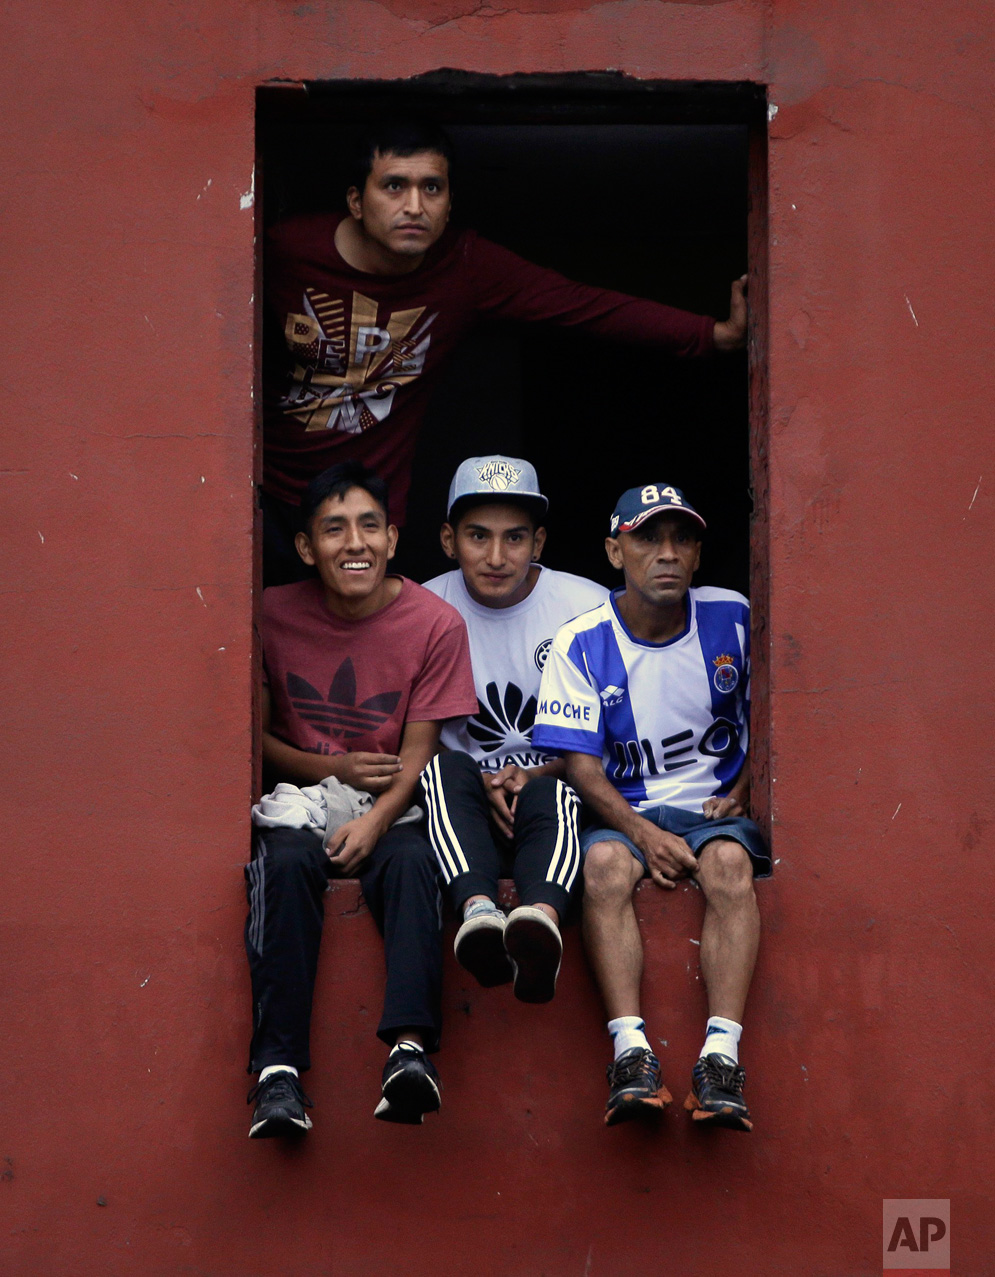 In this Monday, May 1, 2017 photo, soccer fans watch from an apartment balcony, which they rented for about $2 dollars, as their teams compete at the Little World Cup Porvenir street soccer championship in Lima, Peru. The annual ritual is Peru's most famous futsal. (AP Photo/Martin Mejia)